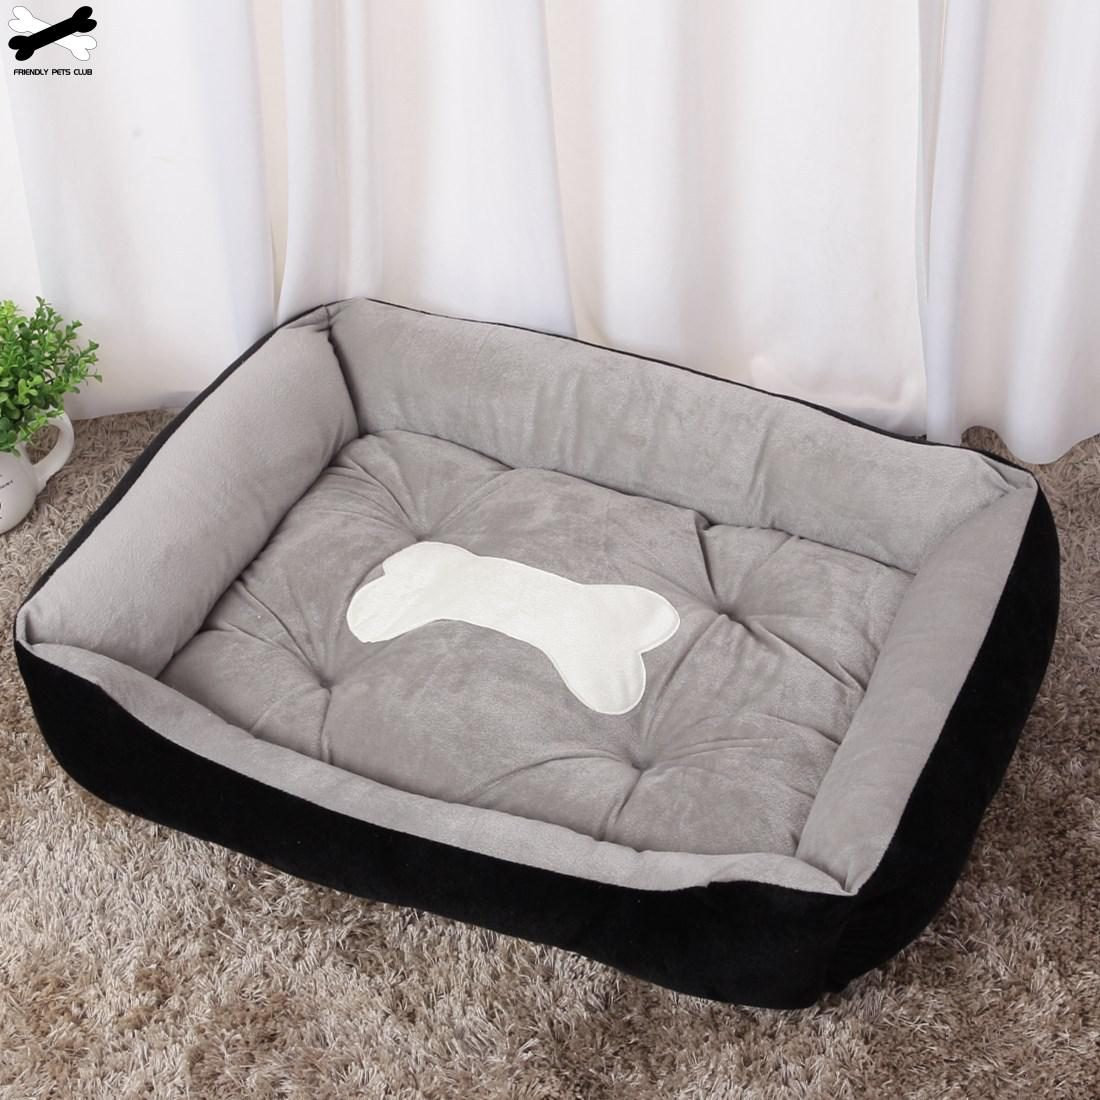 Washable Bone Warm Soft linen Pet bed